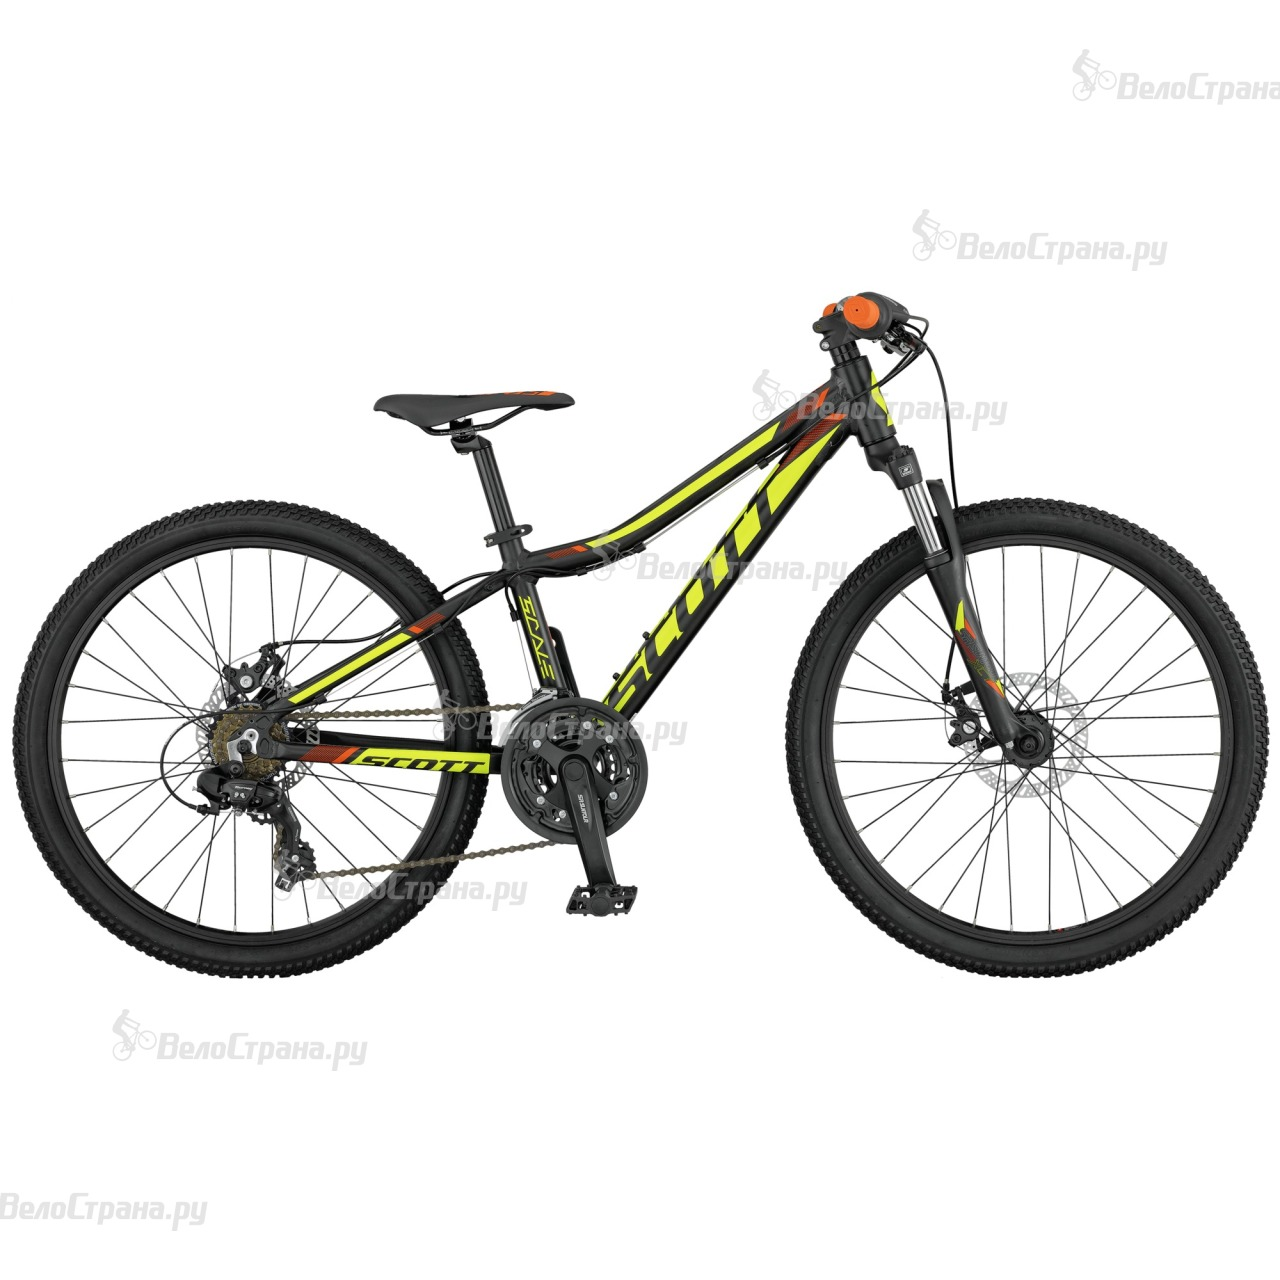 Велосипед Scott Scale JR 24 disc (2017) велосипед scott voltage junior 24 disc 24 2016